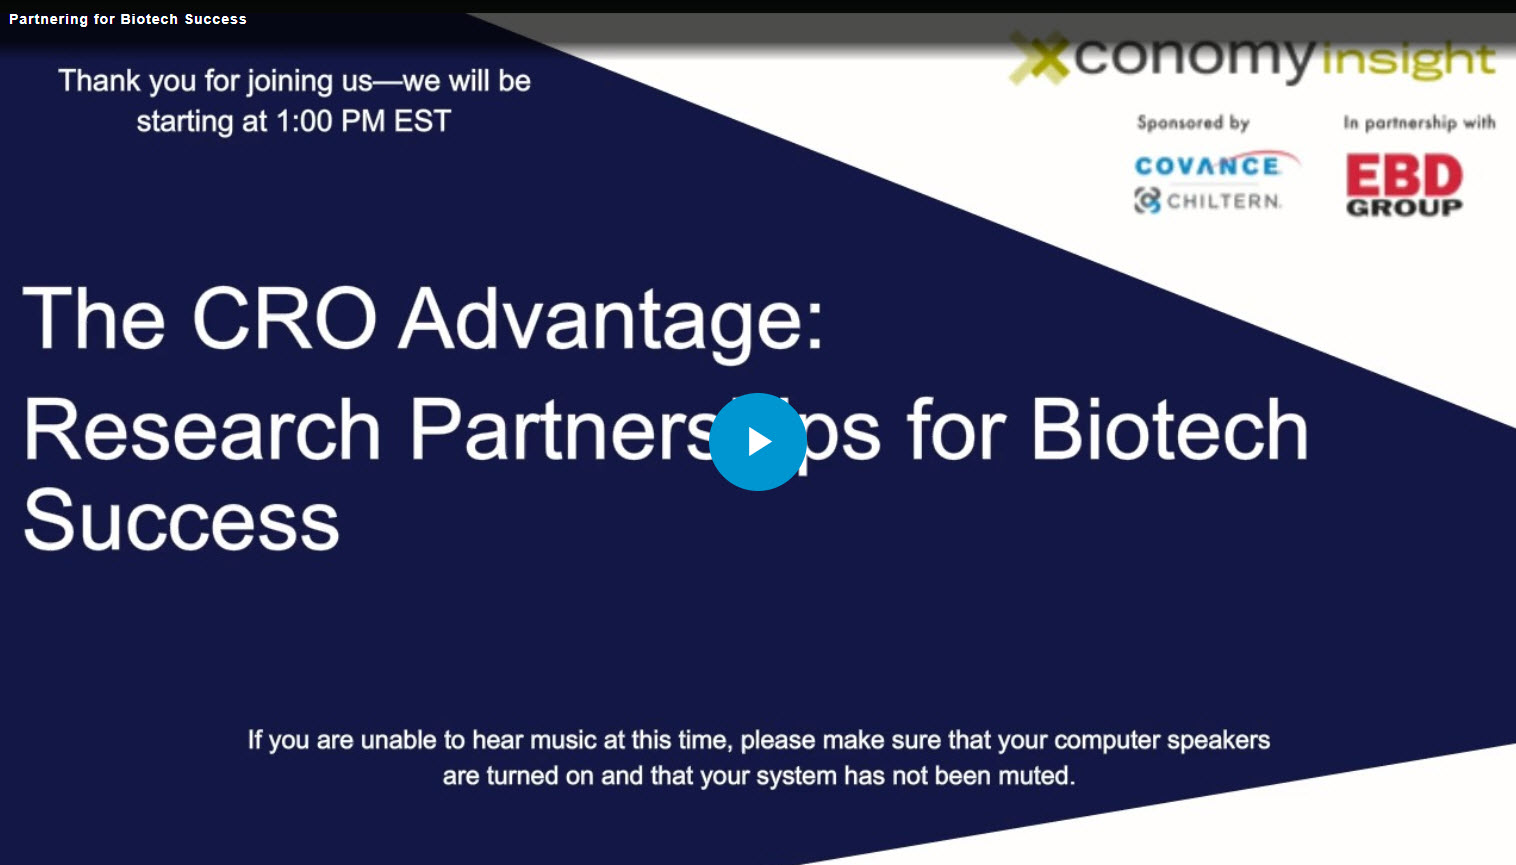 Partnering for Biotech Success